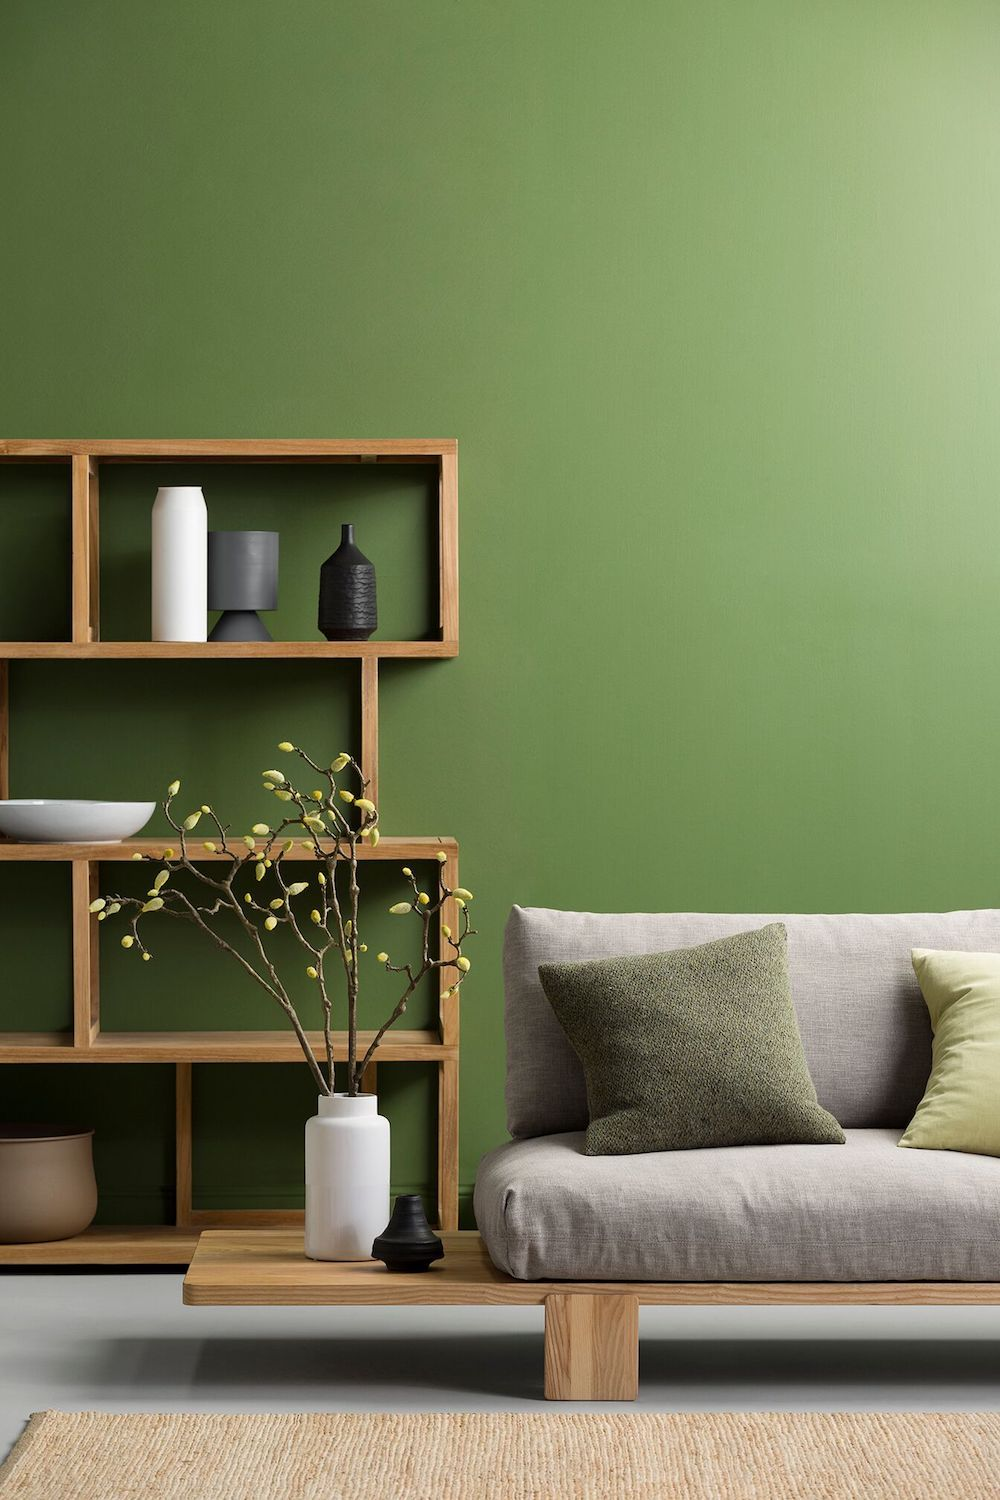 living room, green wall, wooden bench with grey cushion, wooden shelves, seamless grey floor, rattan rug